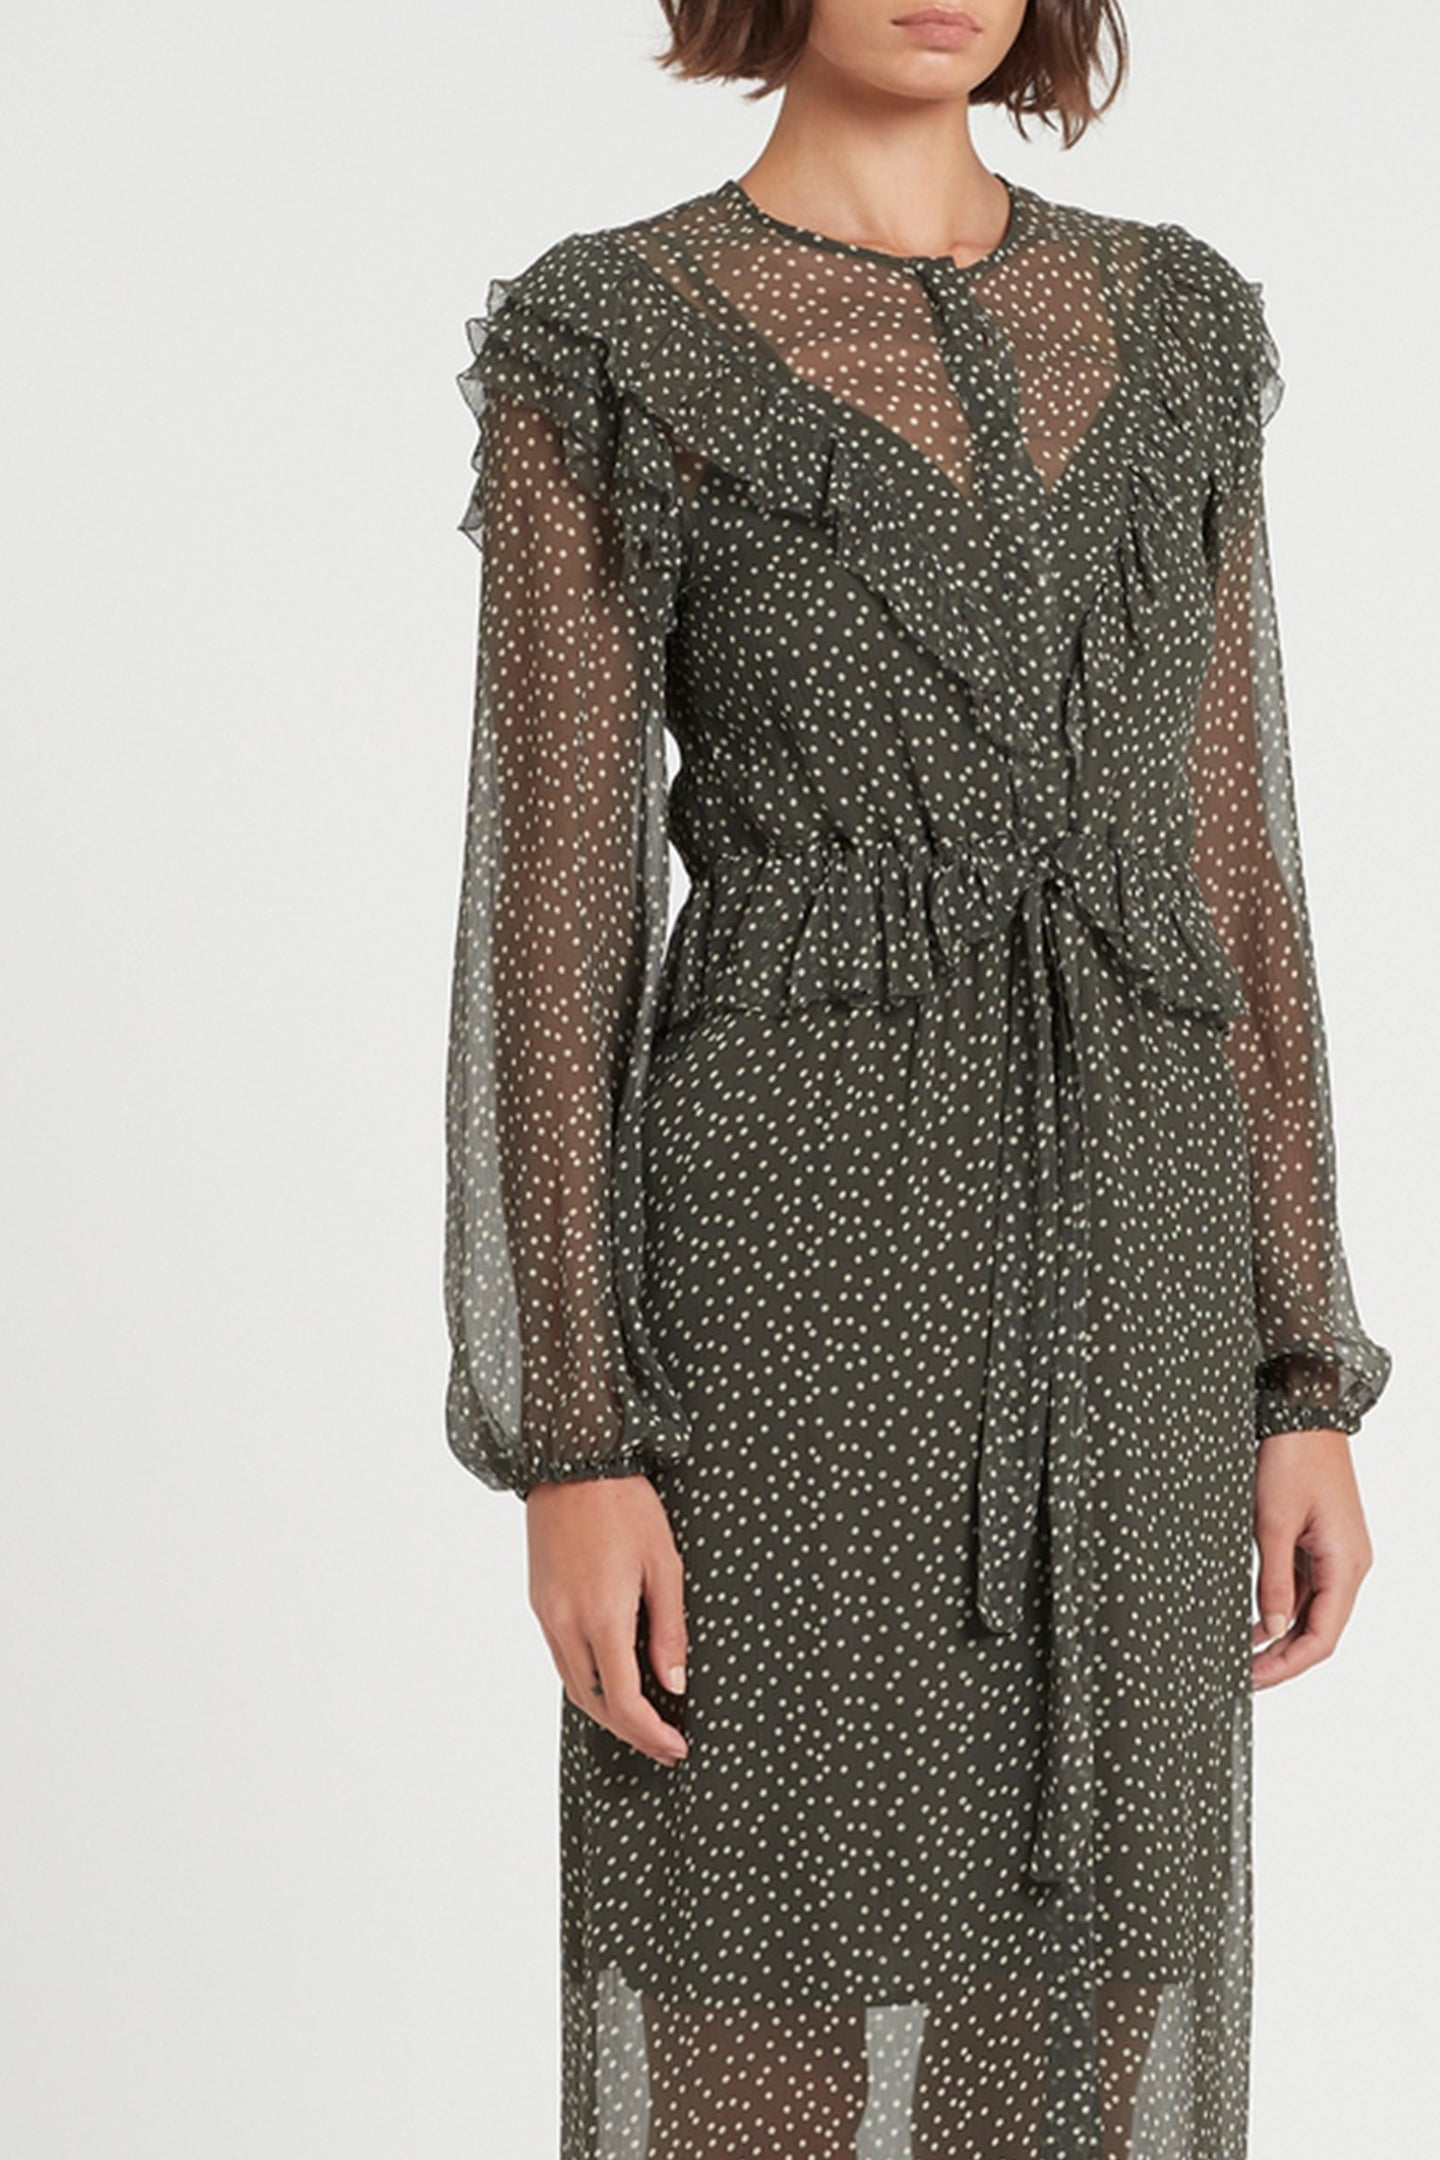 SIR the label ISABELLA LONG SLEEVE MIDI DRESS OLIVE POLKA DOT